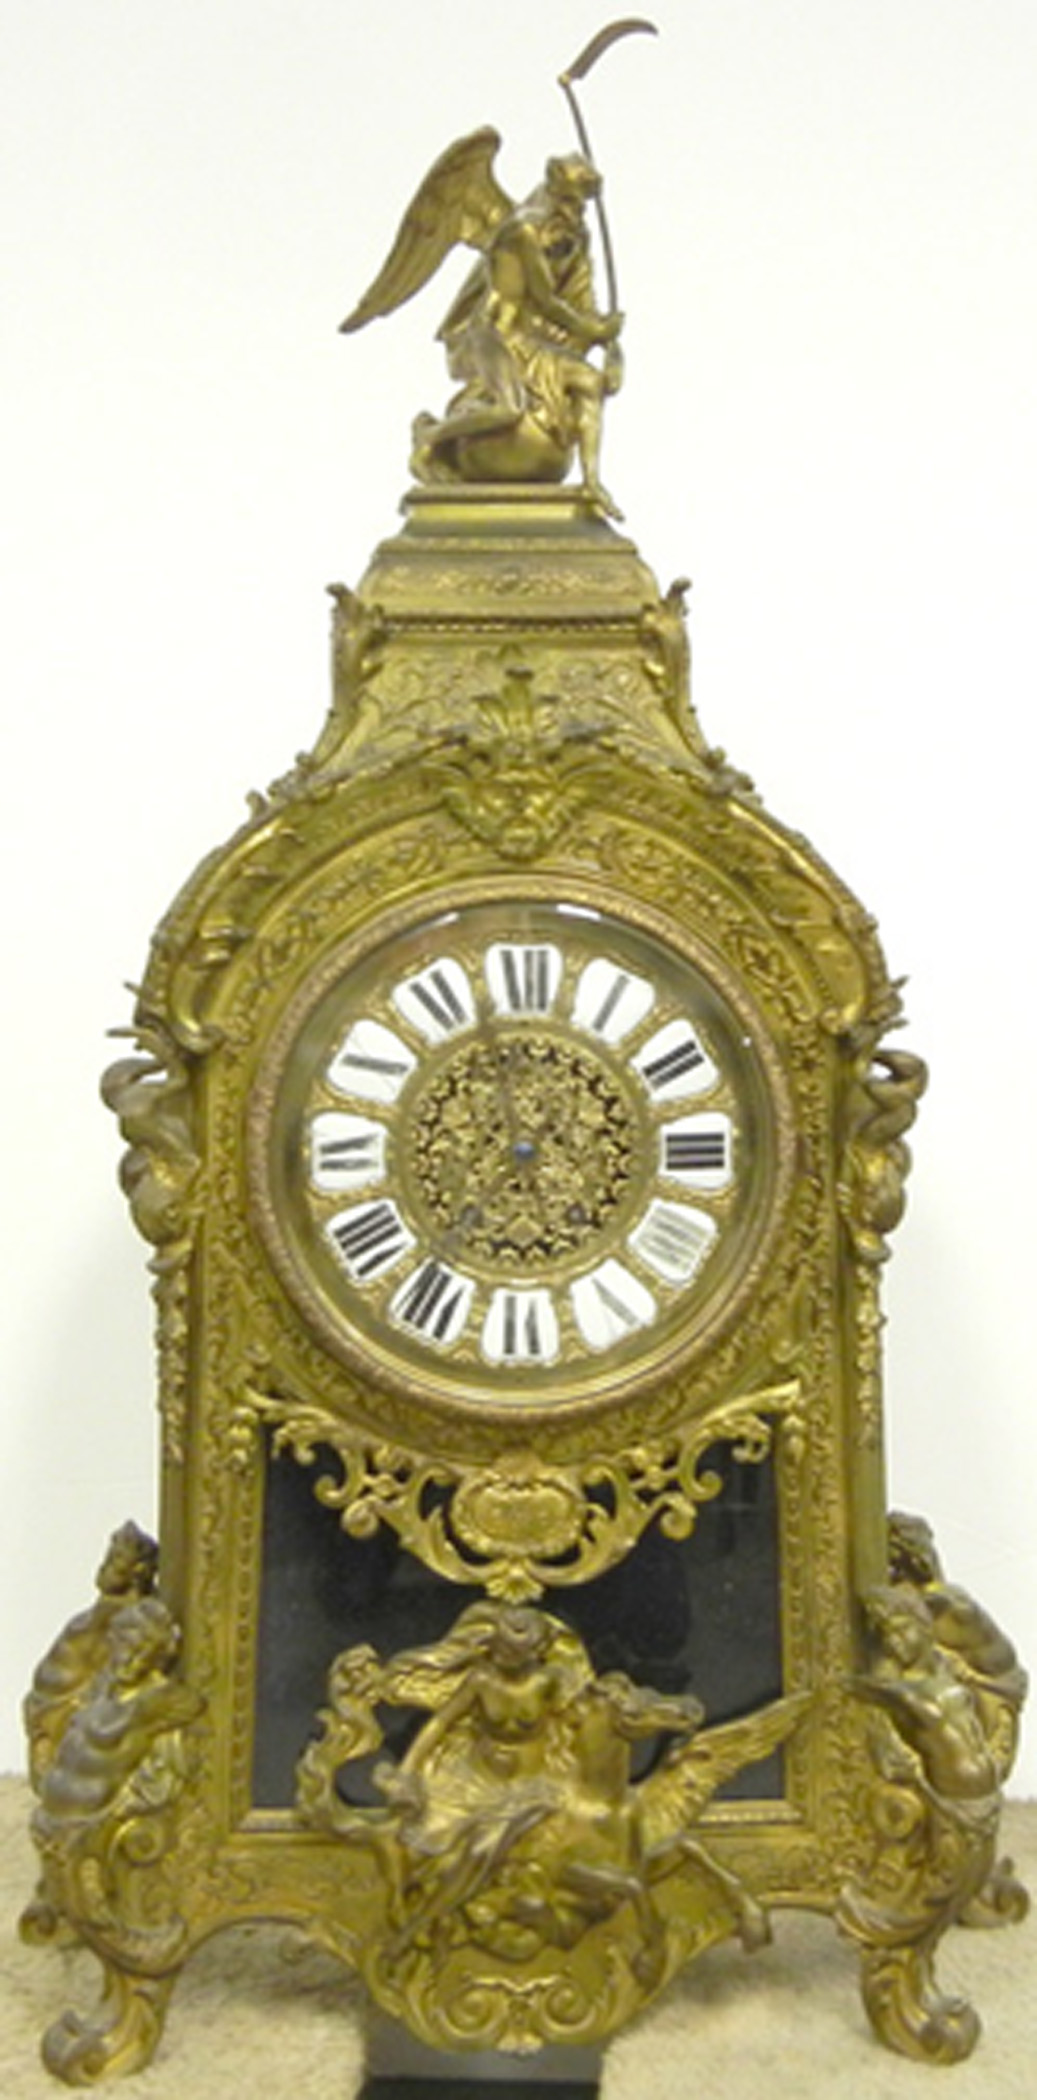 Tiffany & Co. brass-cased clock. Stephenson's image.